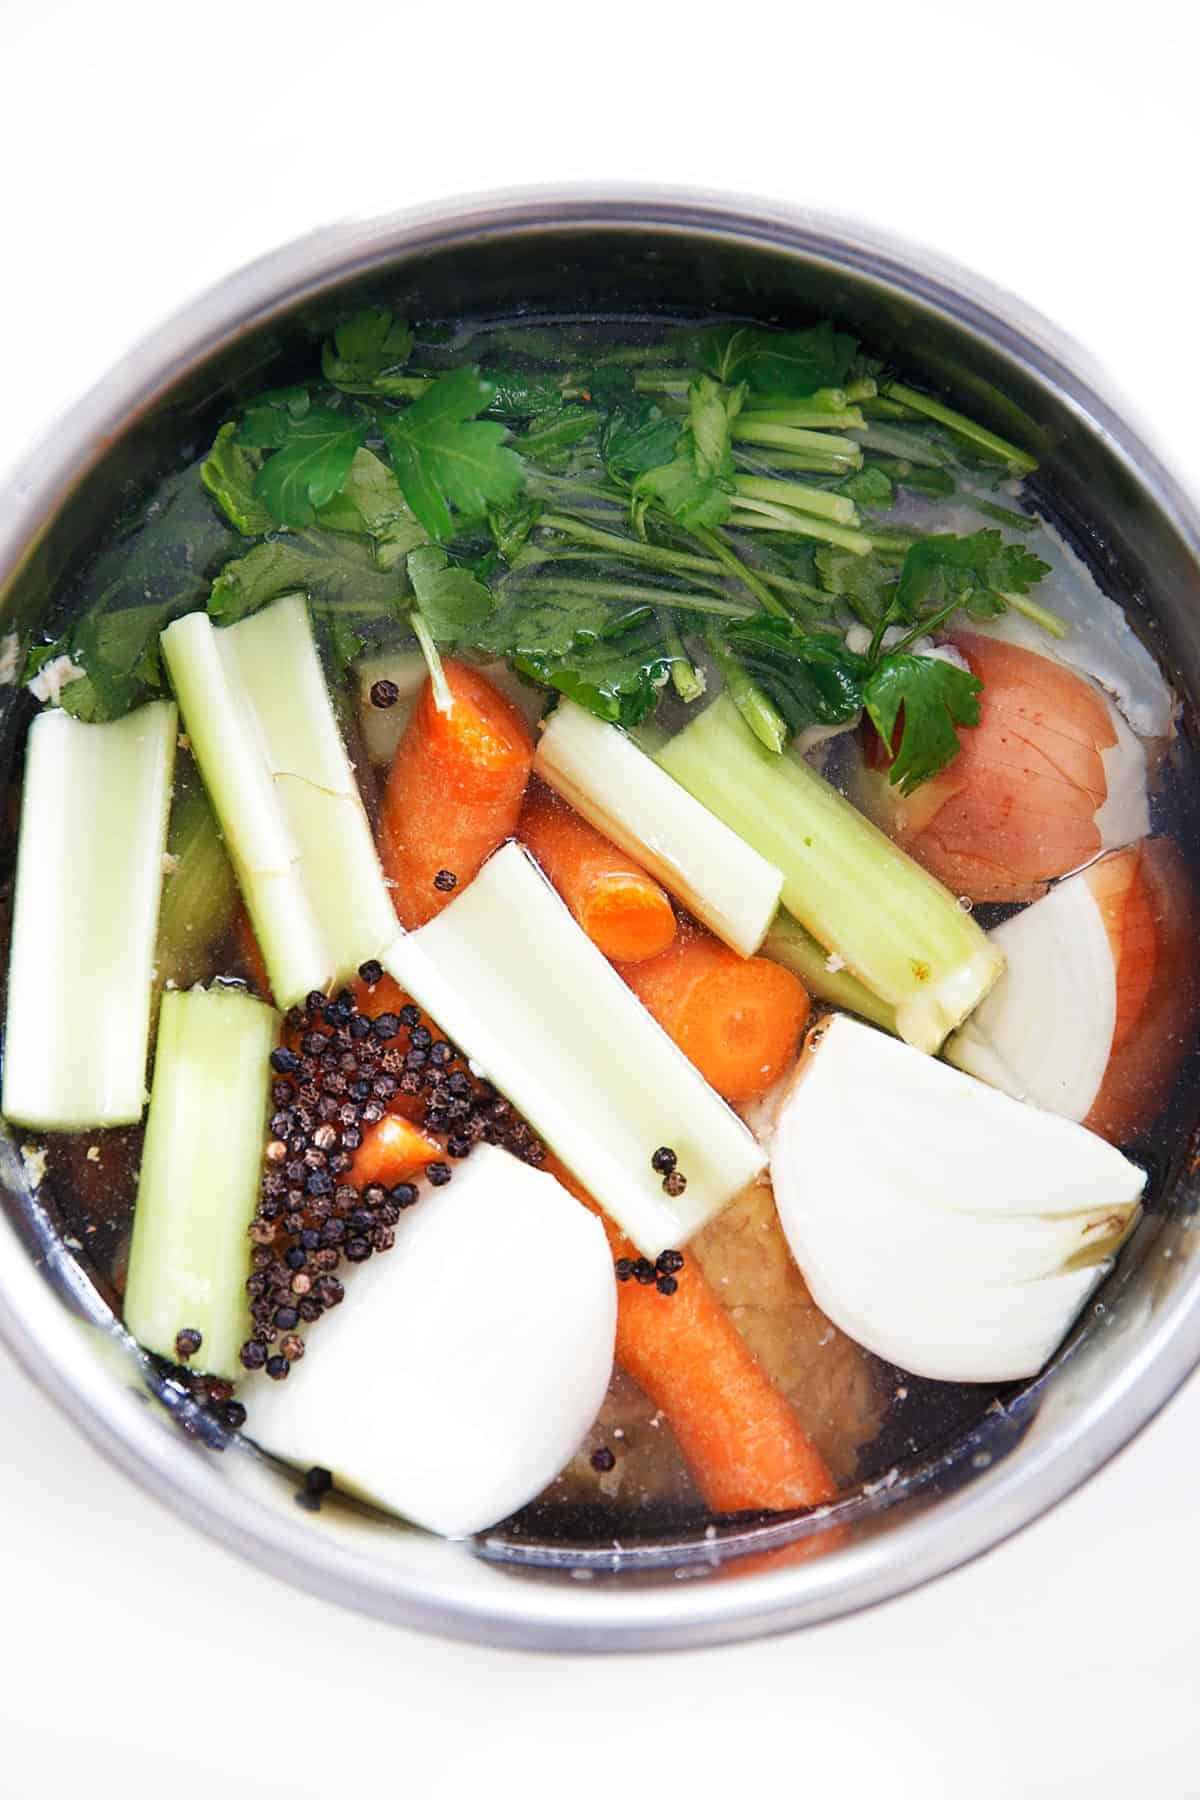 How To Make Chicken Broth in the Instant Pot